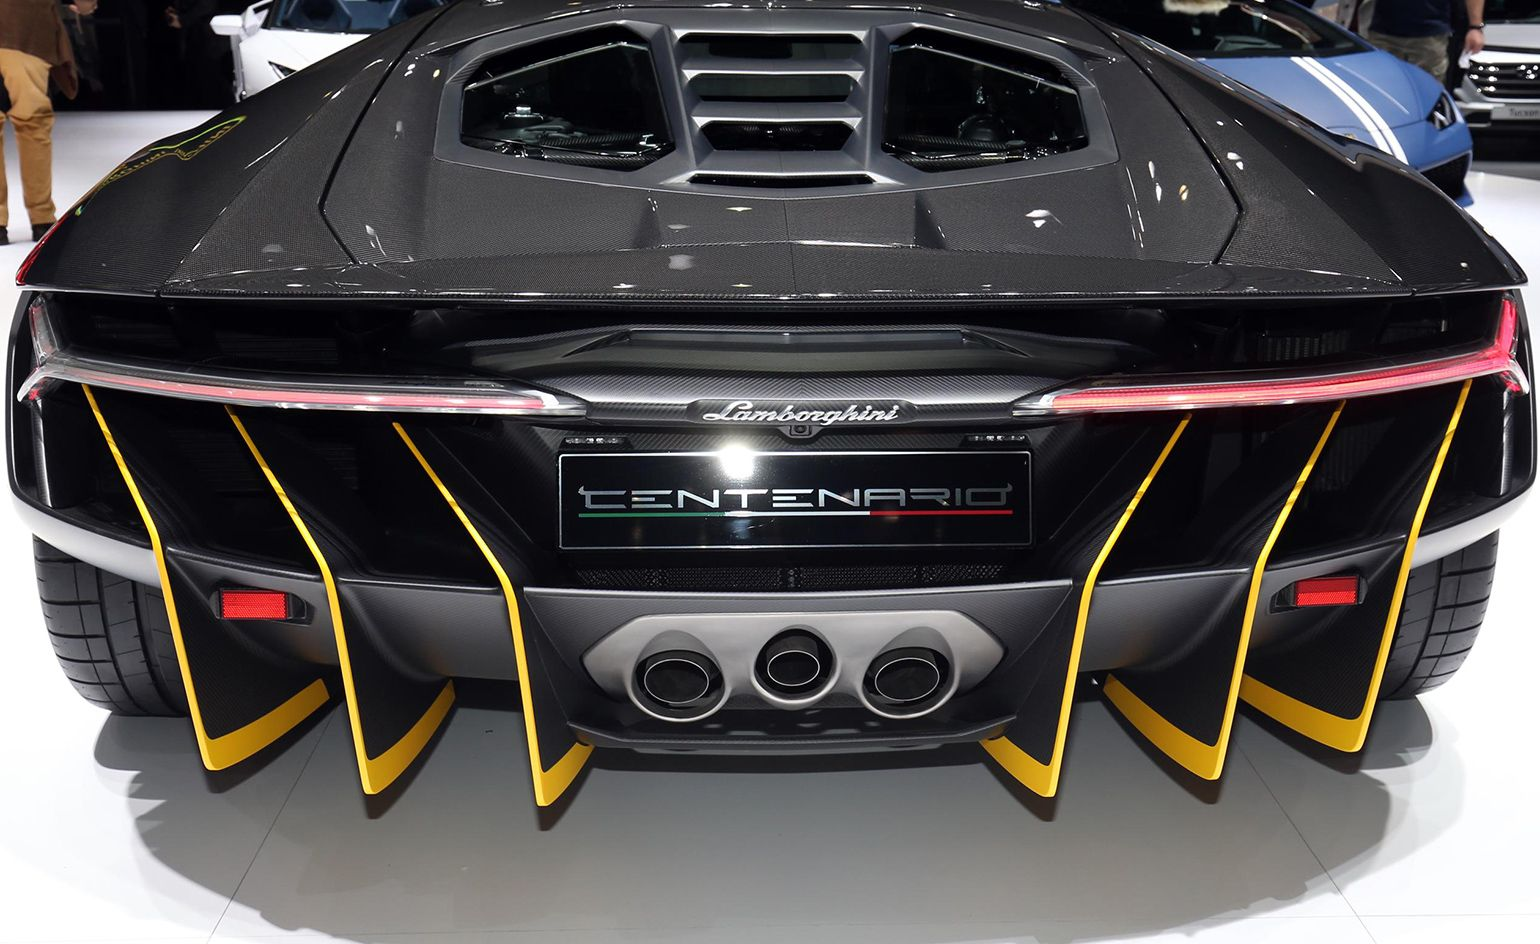 Car Chronicles The Best New Cars And Concepts From Geneva Motor Show 2016 Lamborghini Centenario Super Cars Best New Cars